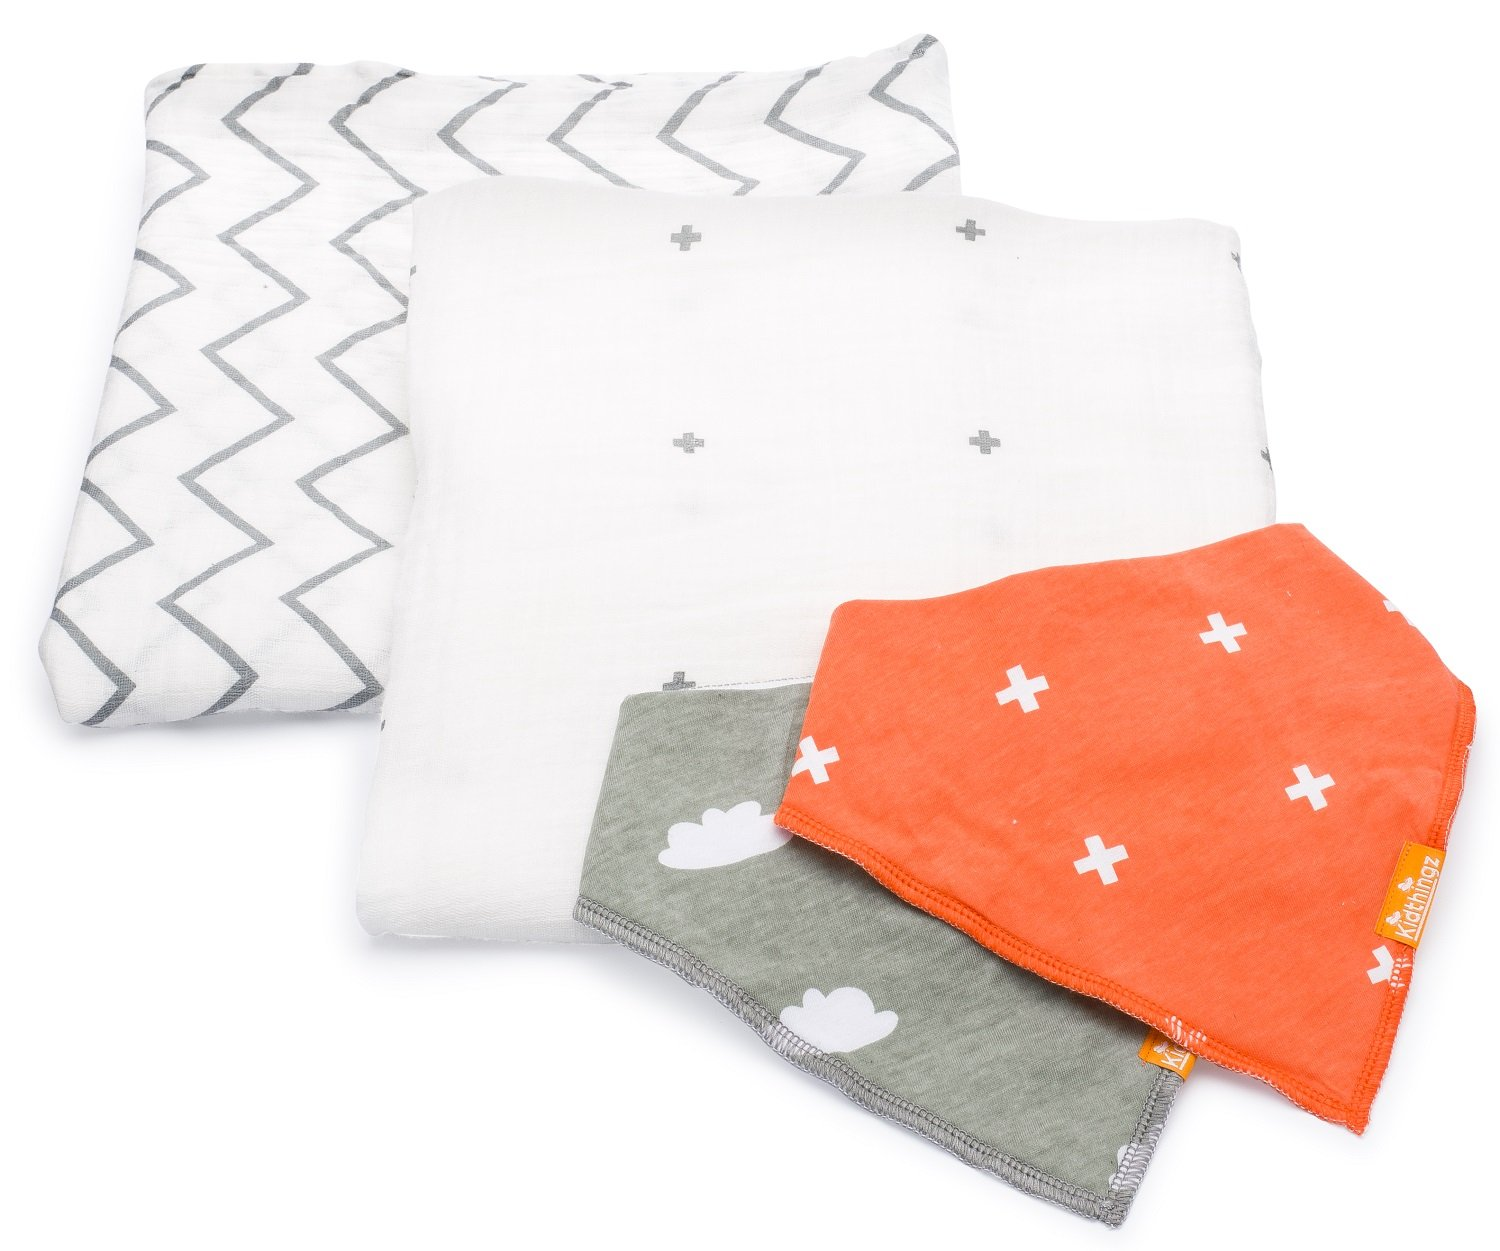 Swaddle blanket Set - Luxurious Pure Organic Cotton For Baby Comfort -Softest Muslin Receiving Blankets – Bonus Baby Bib Set and E Book Smarthingz Ltd SWK-001-17